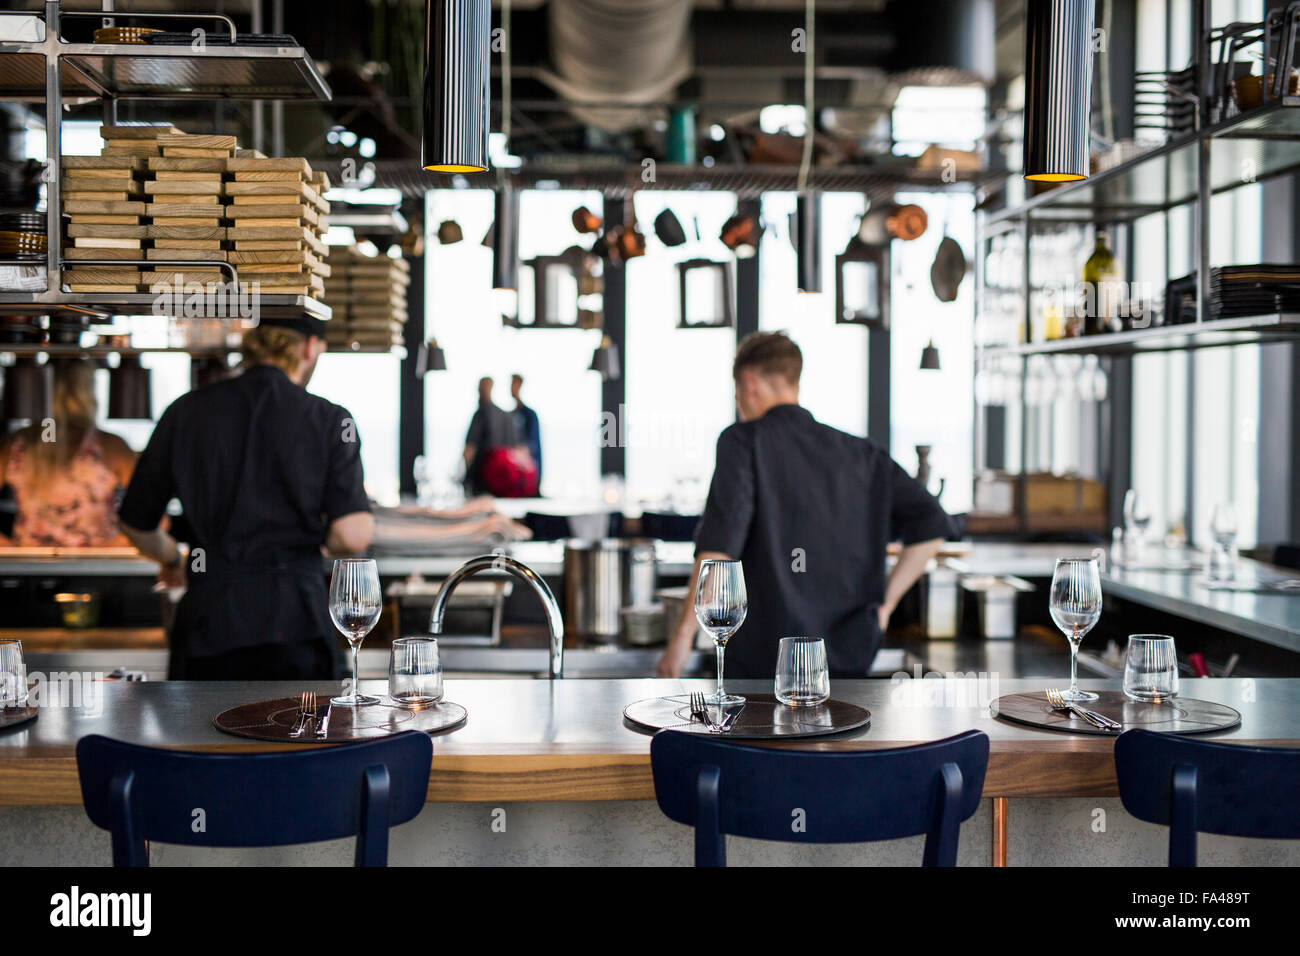 Restaurant Kitchen View rear view of chefs cooking food in kitchen at skybar restaurant